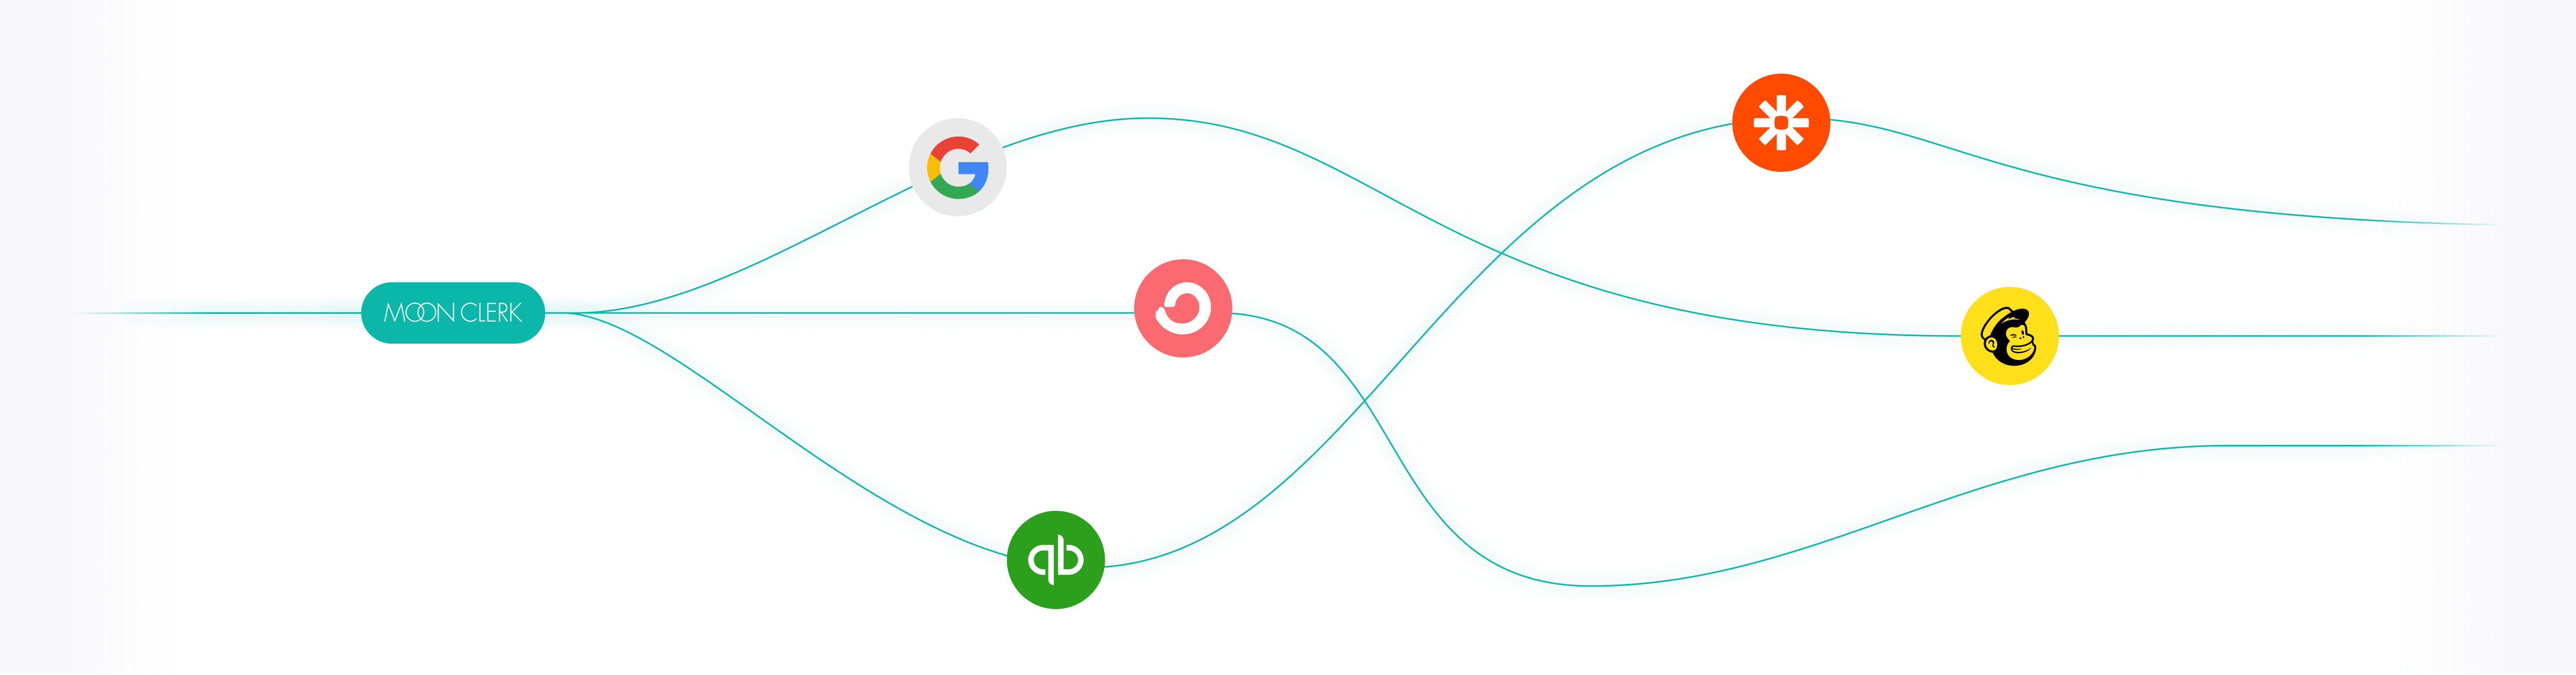 MoonClerk connected to other services via a line including, Google, quickbooks, mailchimp, zapier, and convertkit.